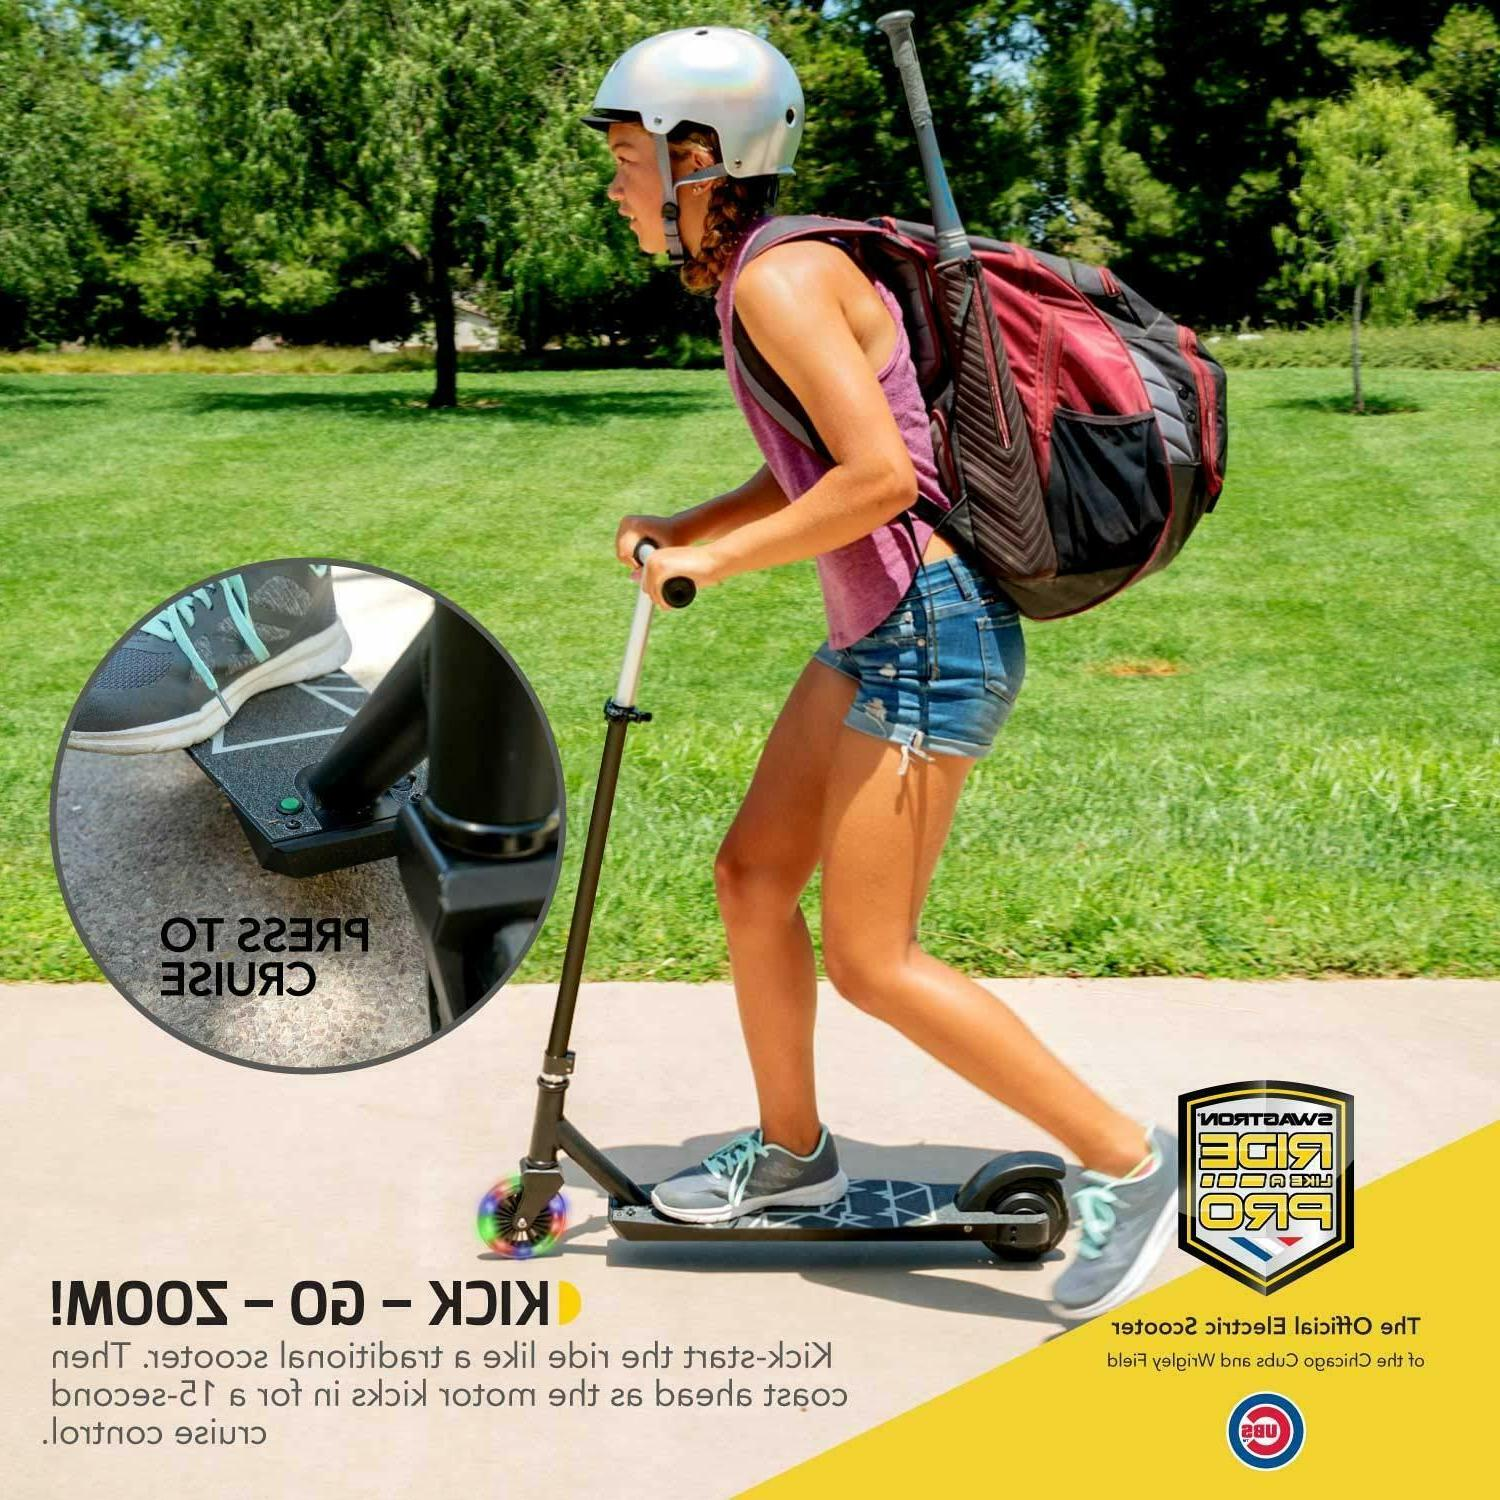 Swagtron Metro SK3 Electric Scooter Wheels & Kick-Start Boost